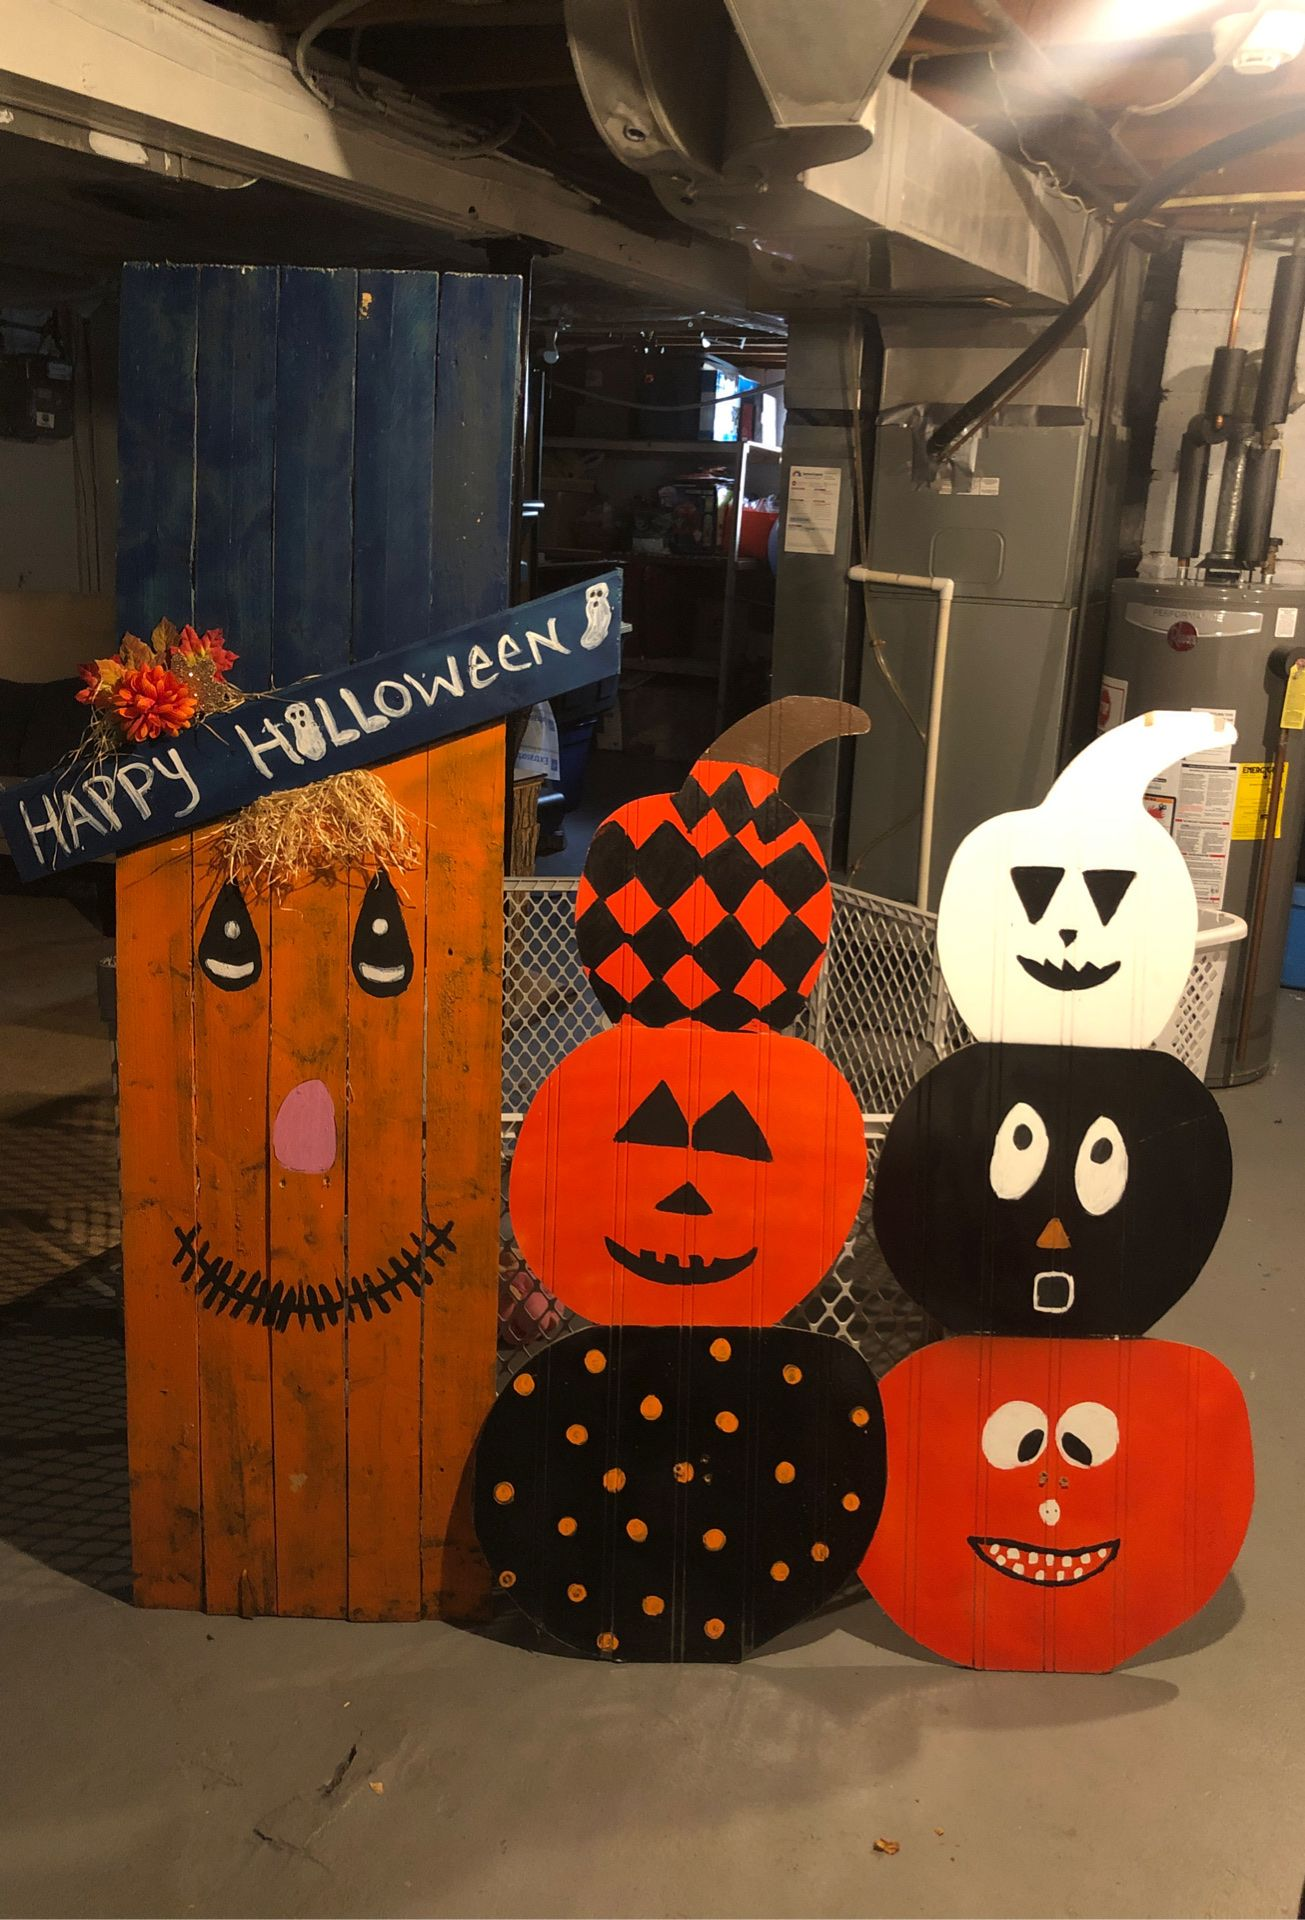 Decorations of Pumpkins and would